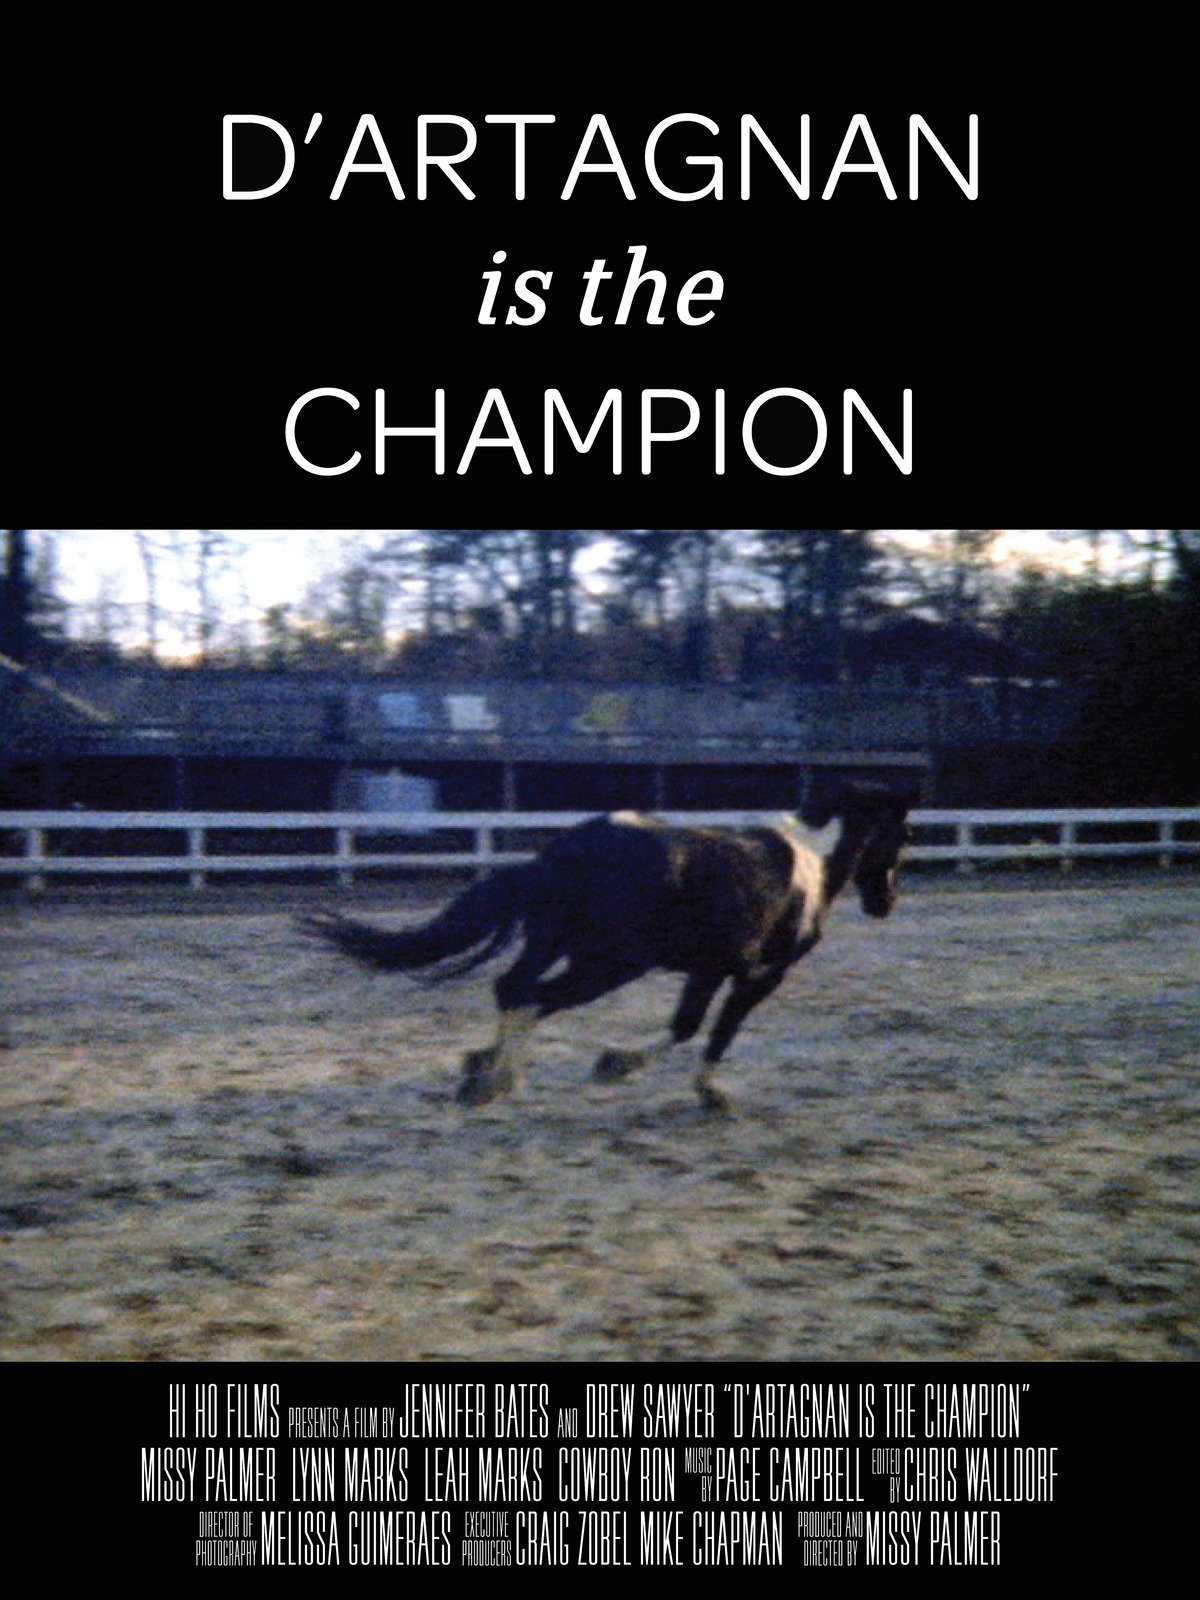 D'artagnan is the Champion